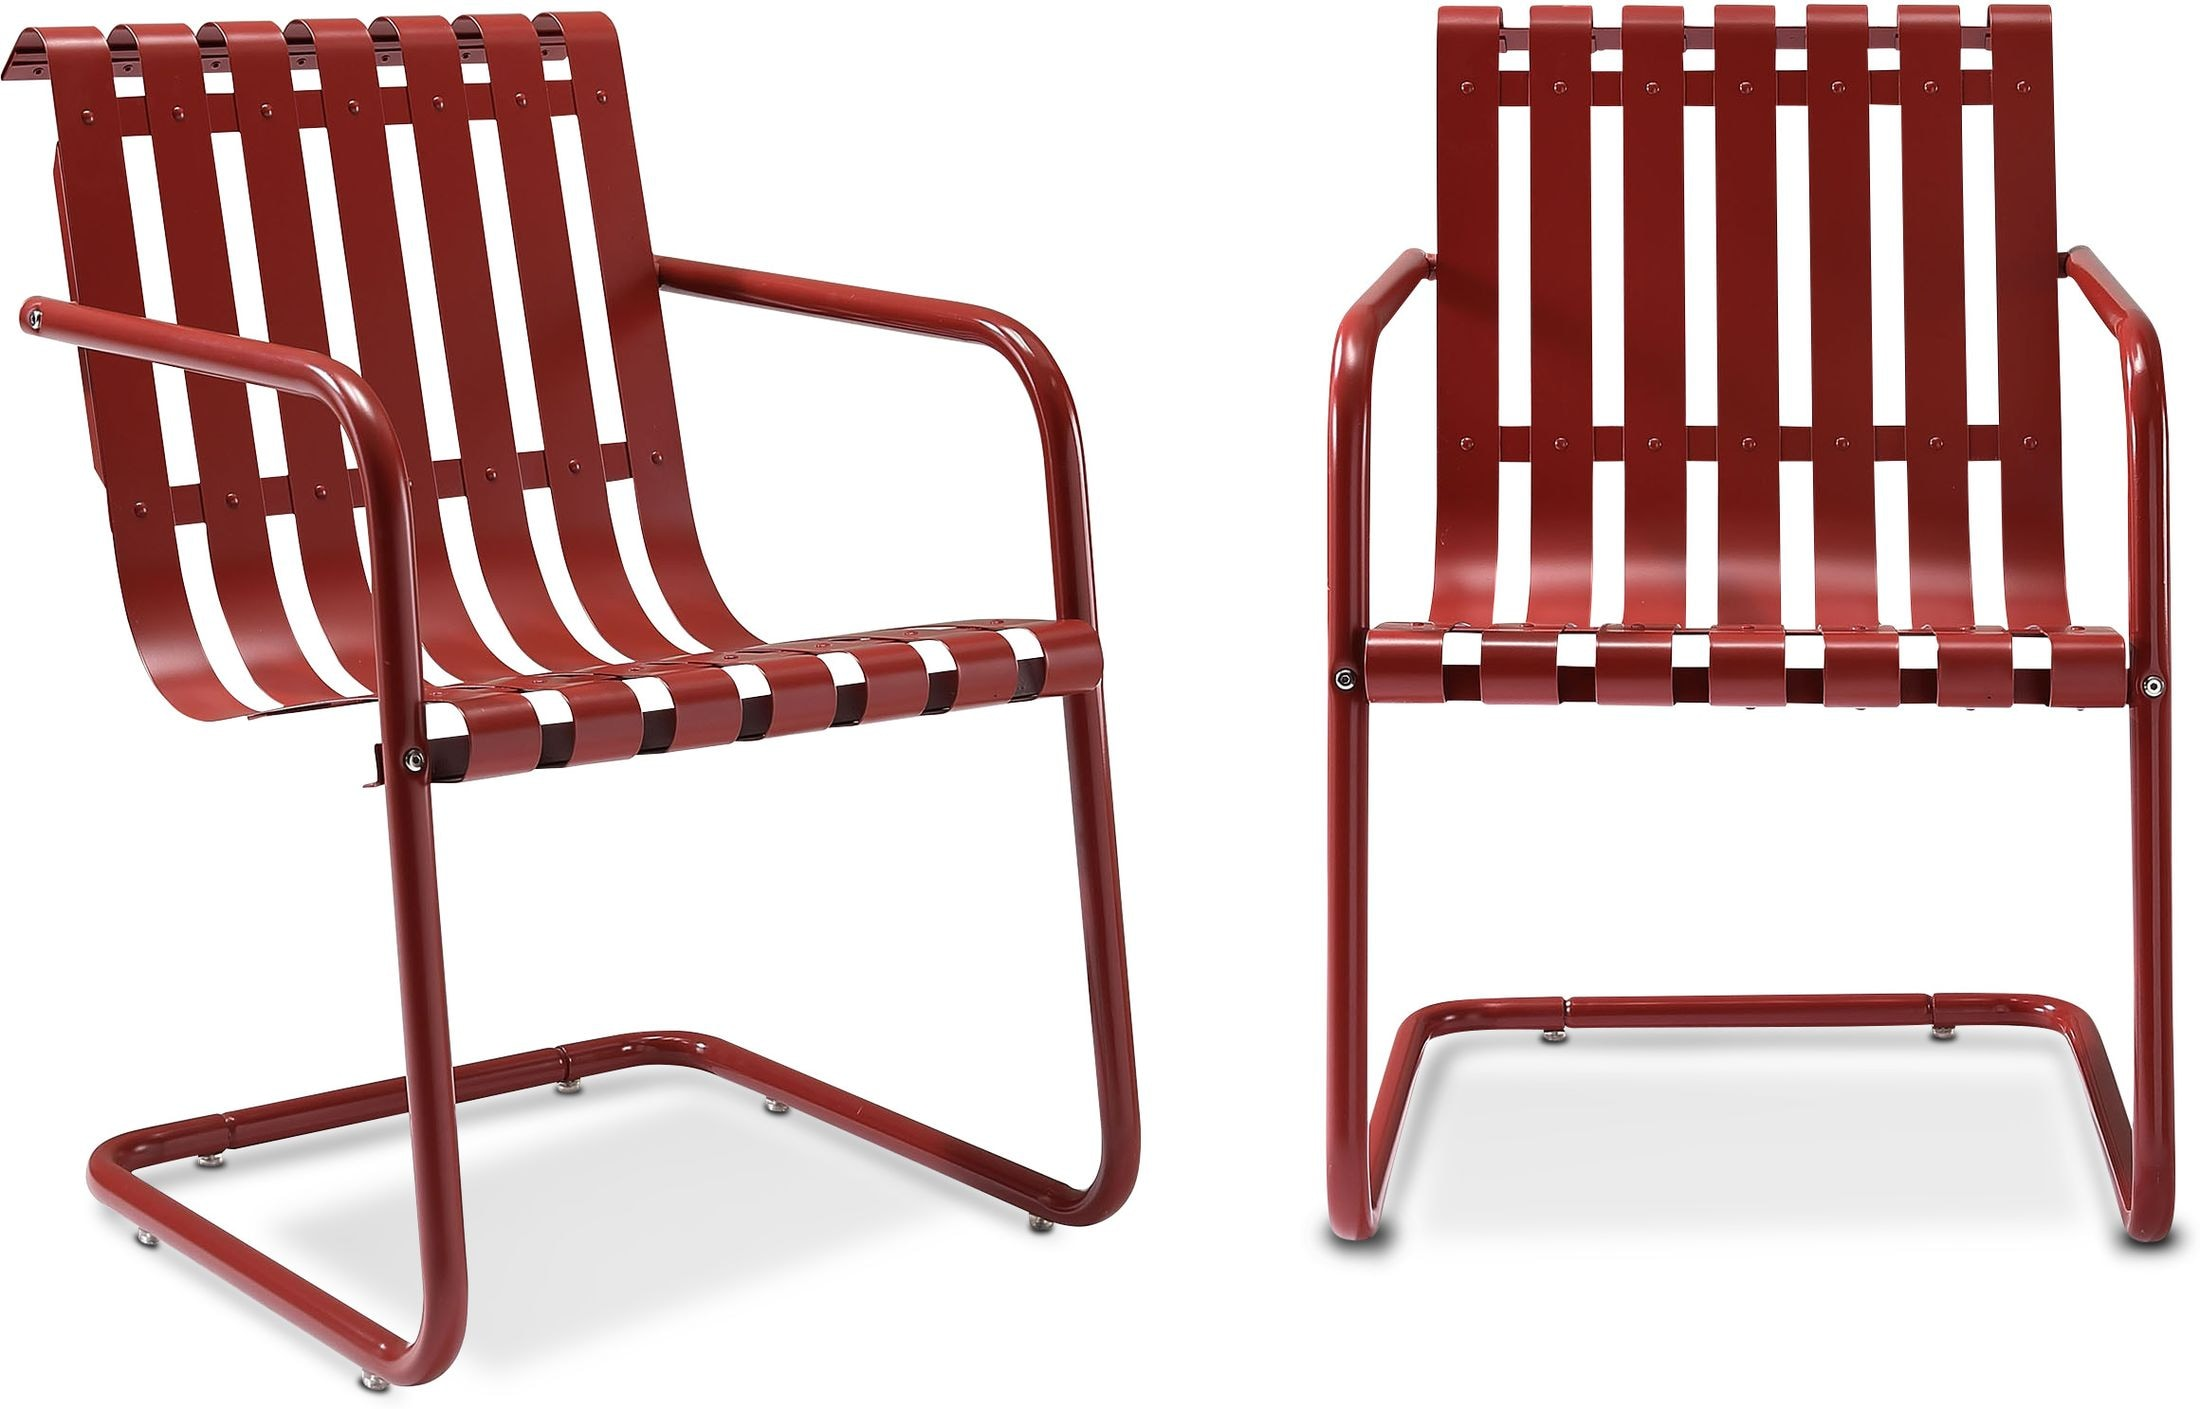 Outdoor Furniture - Janie Set of 2 Outdoor Chairs